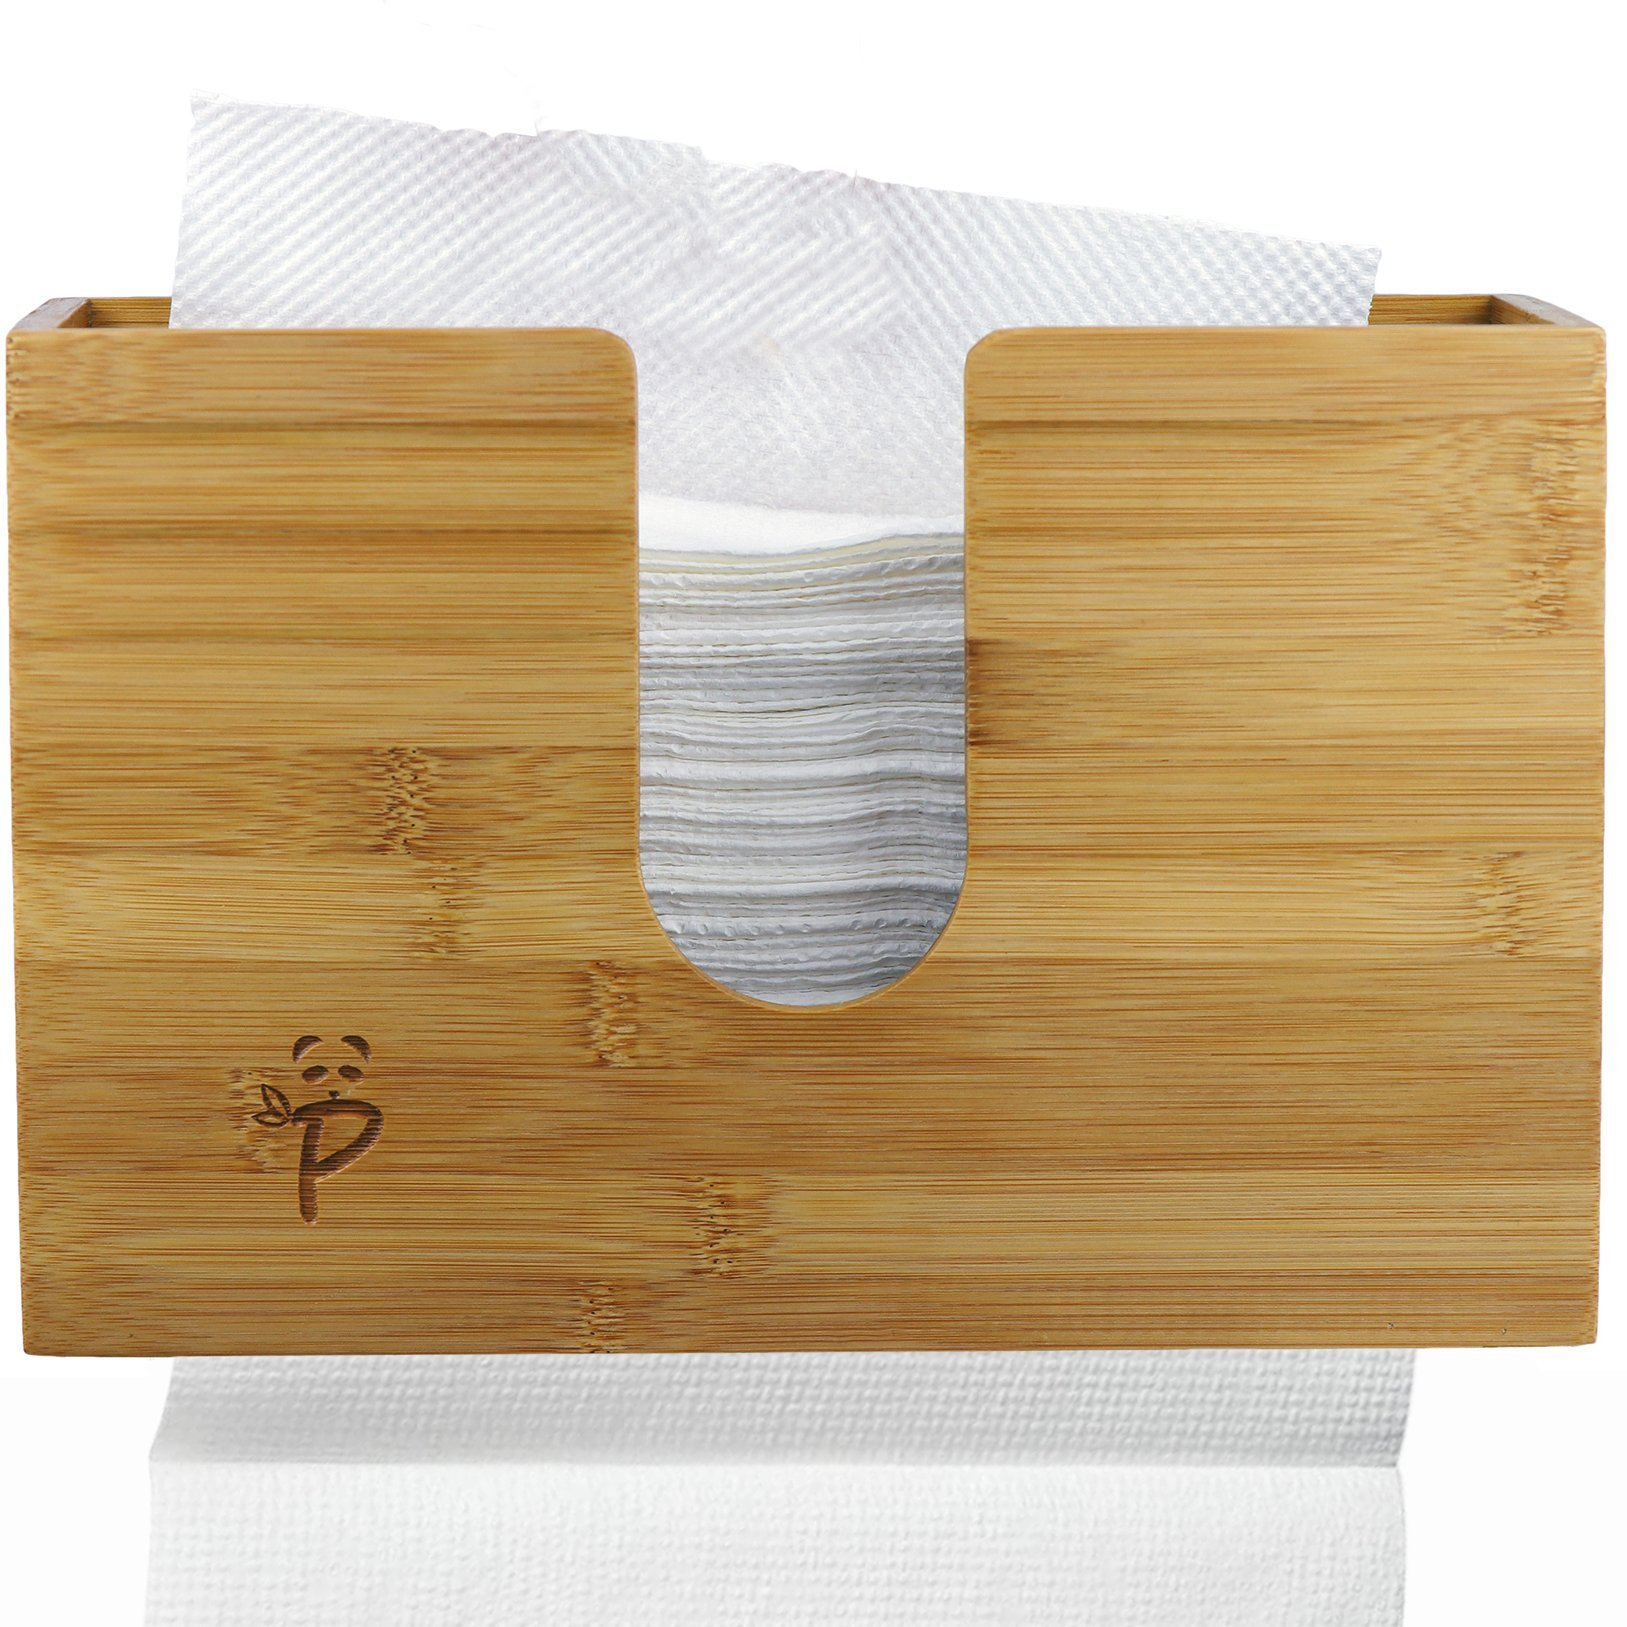 Paper Towel Dispenser Bamboo for Kitchen Bathroom Decor Wall Mount Or Countertop Paper Towel Holder for Multifold Paper Towels, Z fold, Trifold Hand Napkin Dual and Smooth Dispensing Beeswax Coated